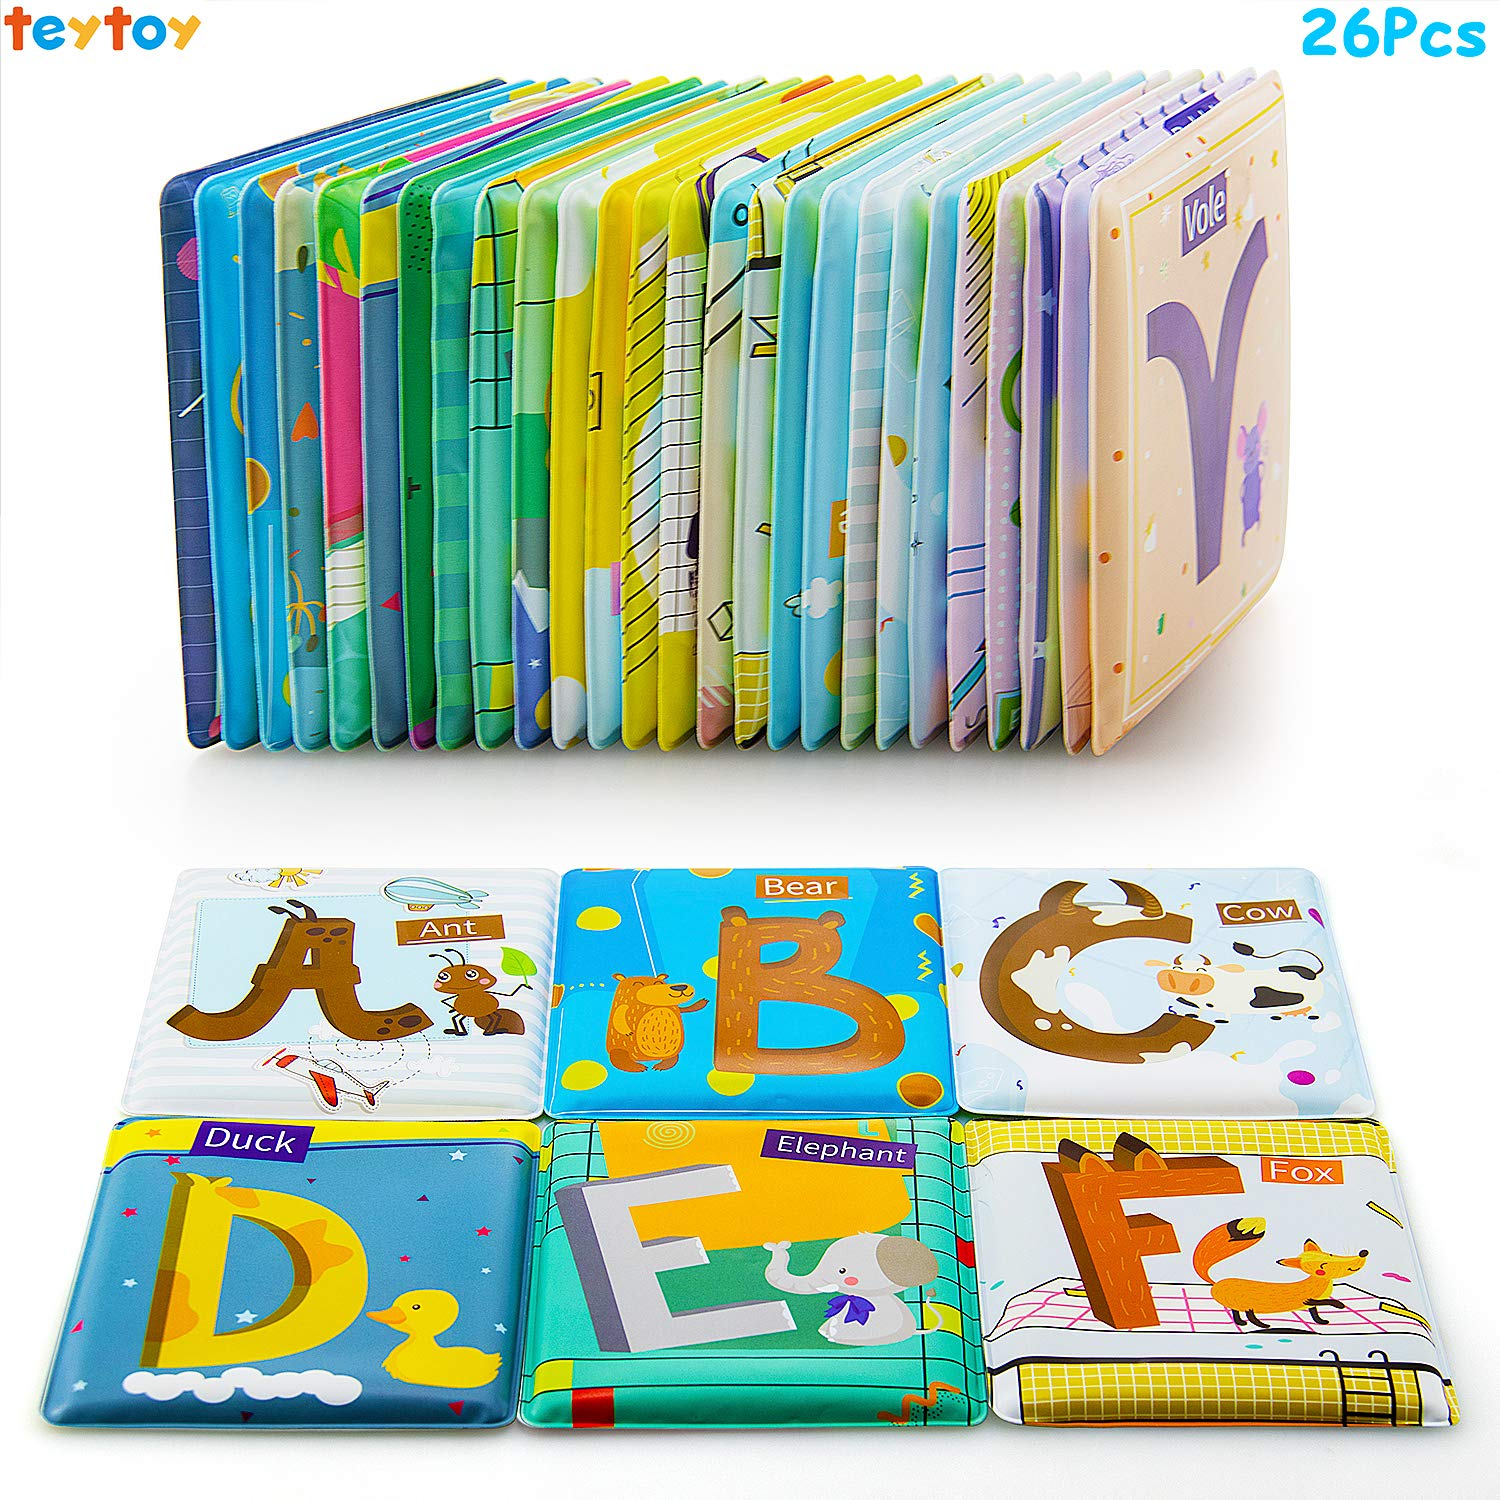 teytoy Alphabet Cards Baby Toys, Soft Alphabet Flash Cards, 26 pcs ABC Infant Early Learning Educational Toy, Activity Bath Bathtub Shower Toy for Toddlers Kids Boys Girls Over 0 Years